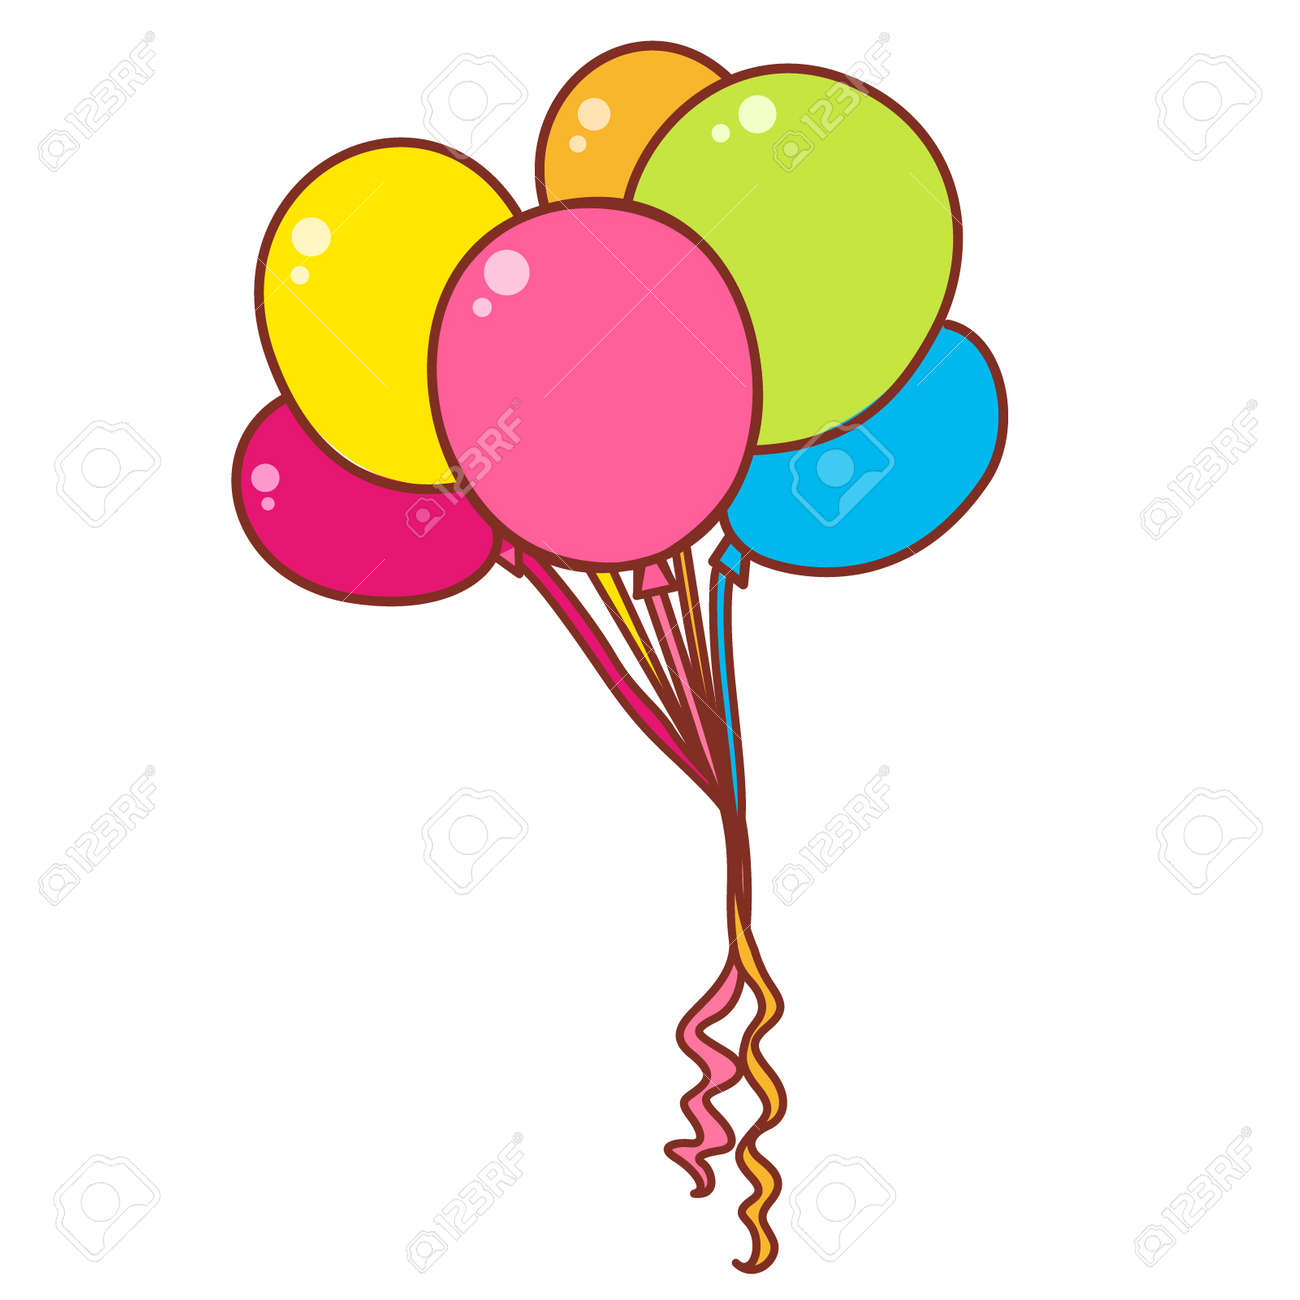 Cartoon Helium Balloons Royalty Free Cliparts Vectors And Stock Illustration Image 96380687 Affordable and search from millions of royalty free images, photos and vectors. cartoon helium balloons